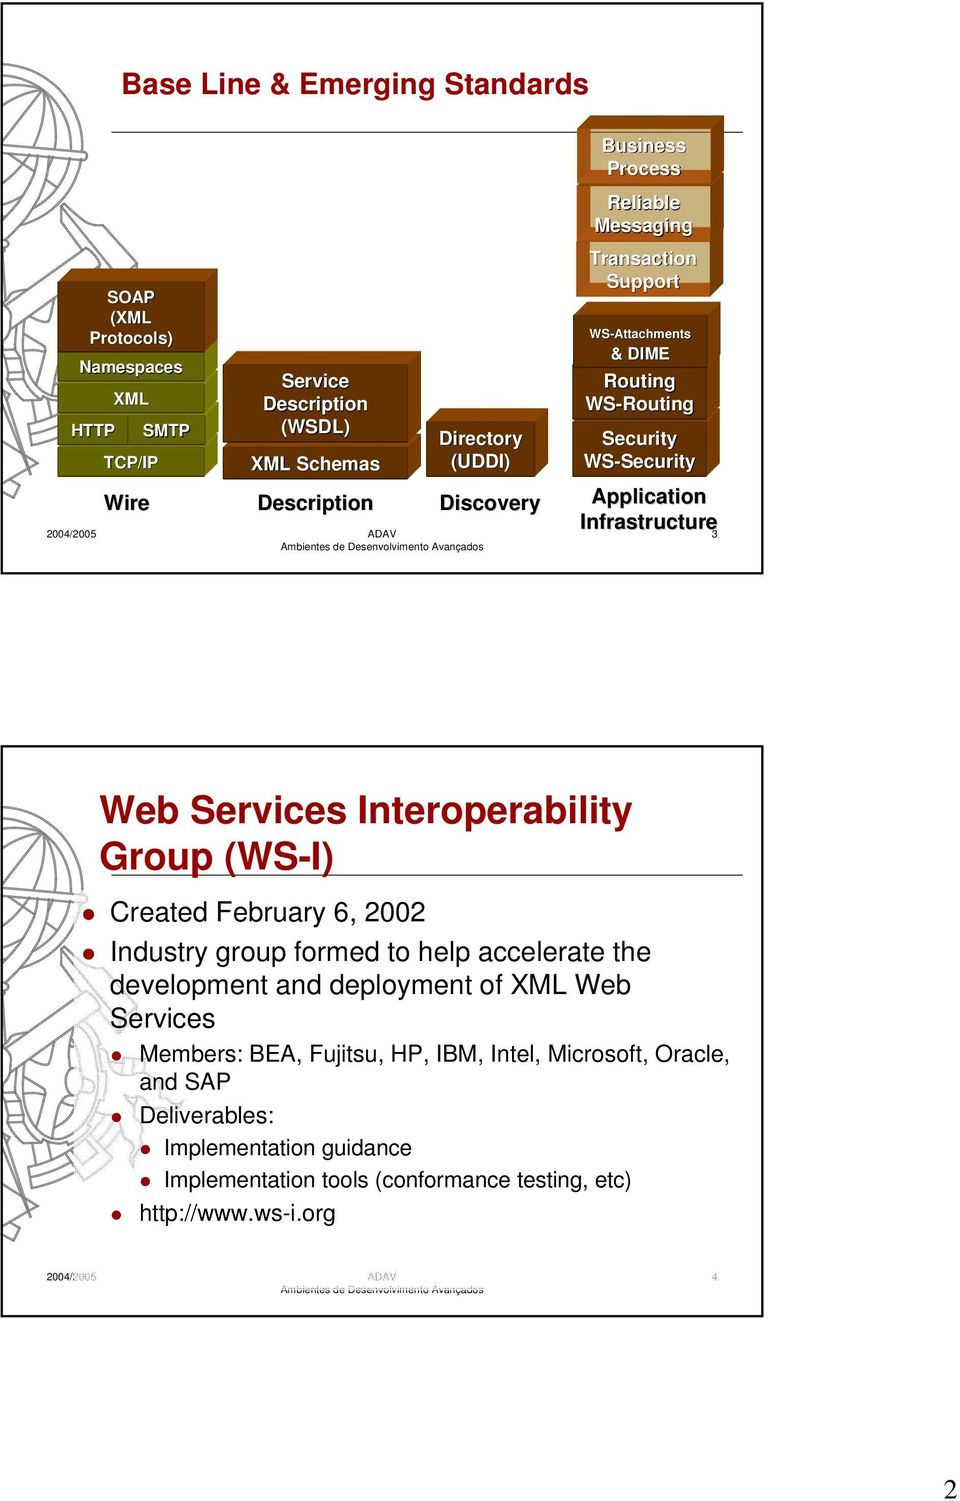 3 Web Services Interoperability Group (WS-I) Created February 6, 2002 Industry group formed to help accelerate the development and deployment of XML Web Services